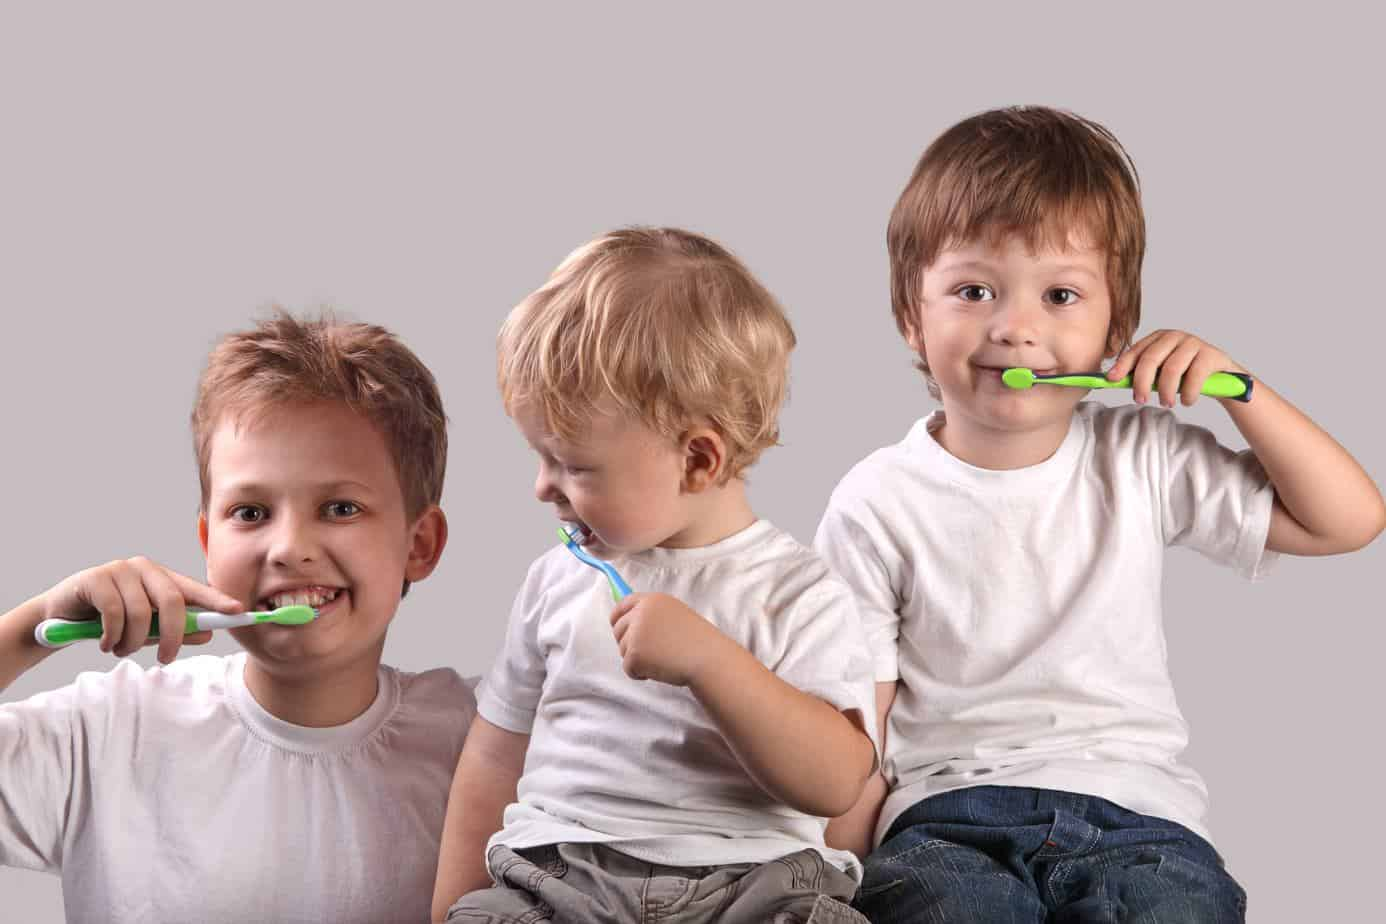 toddlers brushing their teeth together